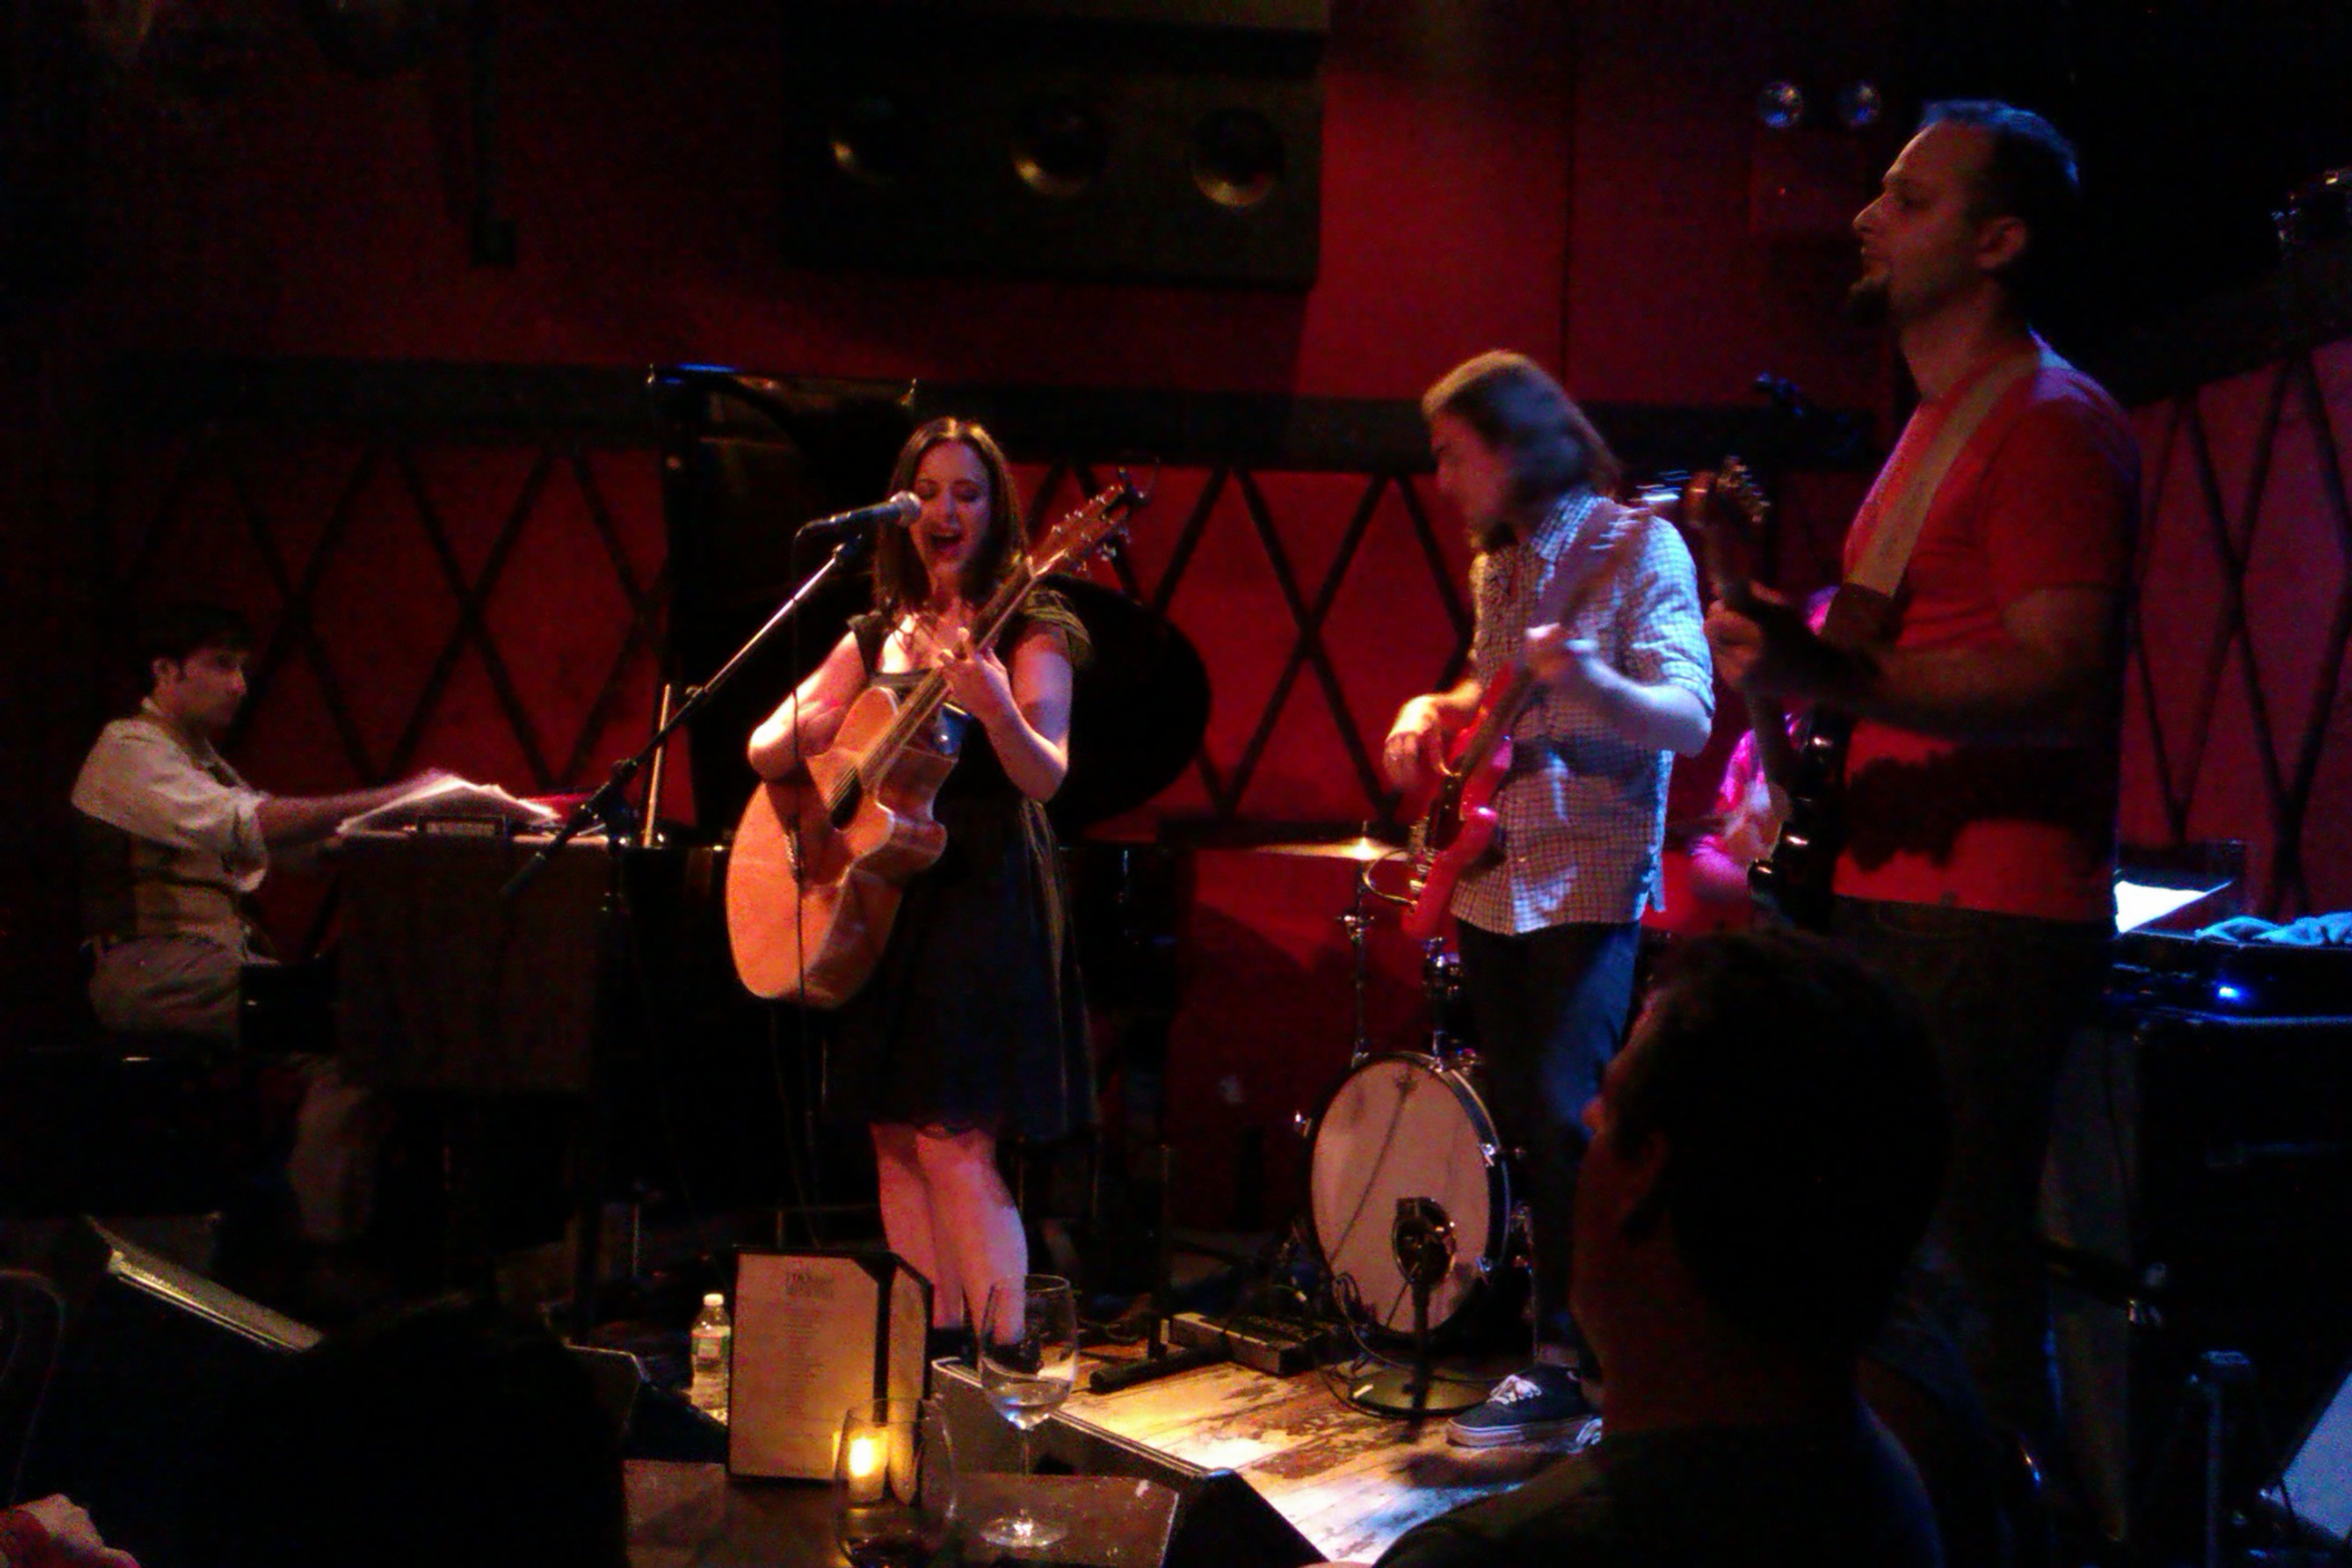 Casey Dinkin performed at Rockwood Music Hall on Sunday, July 28, 2013